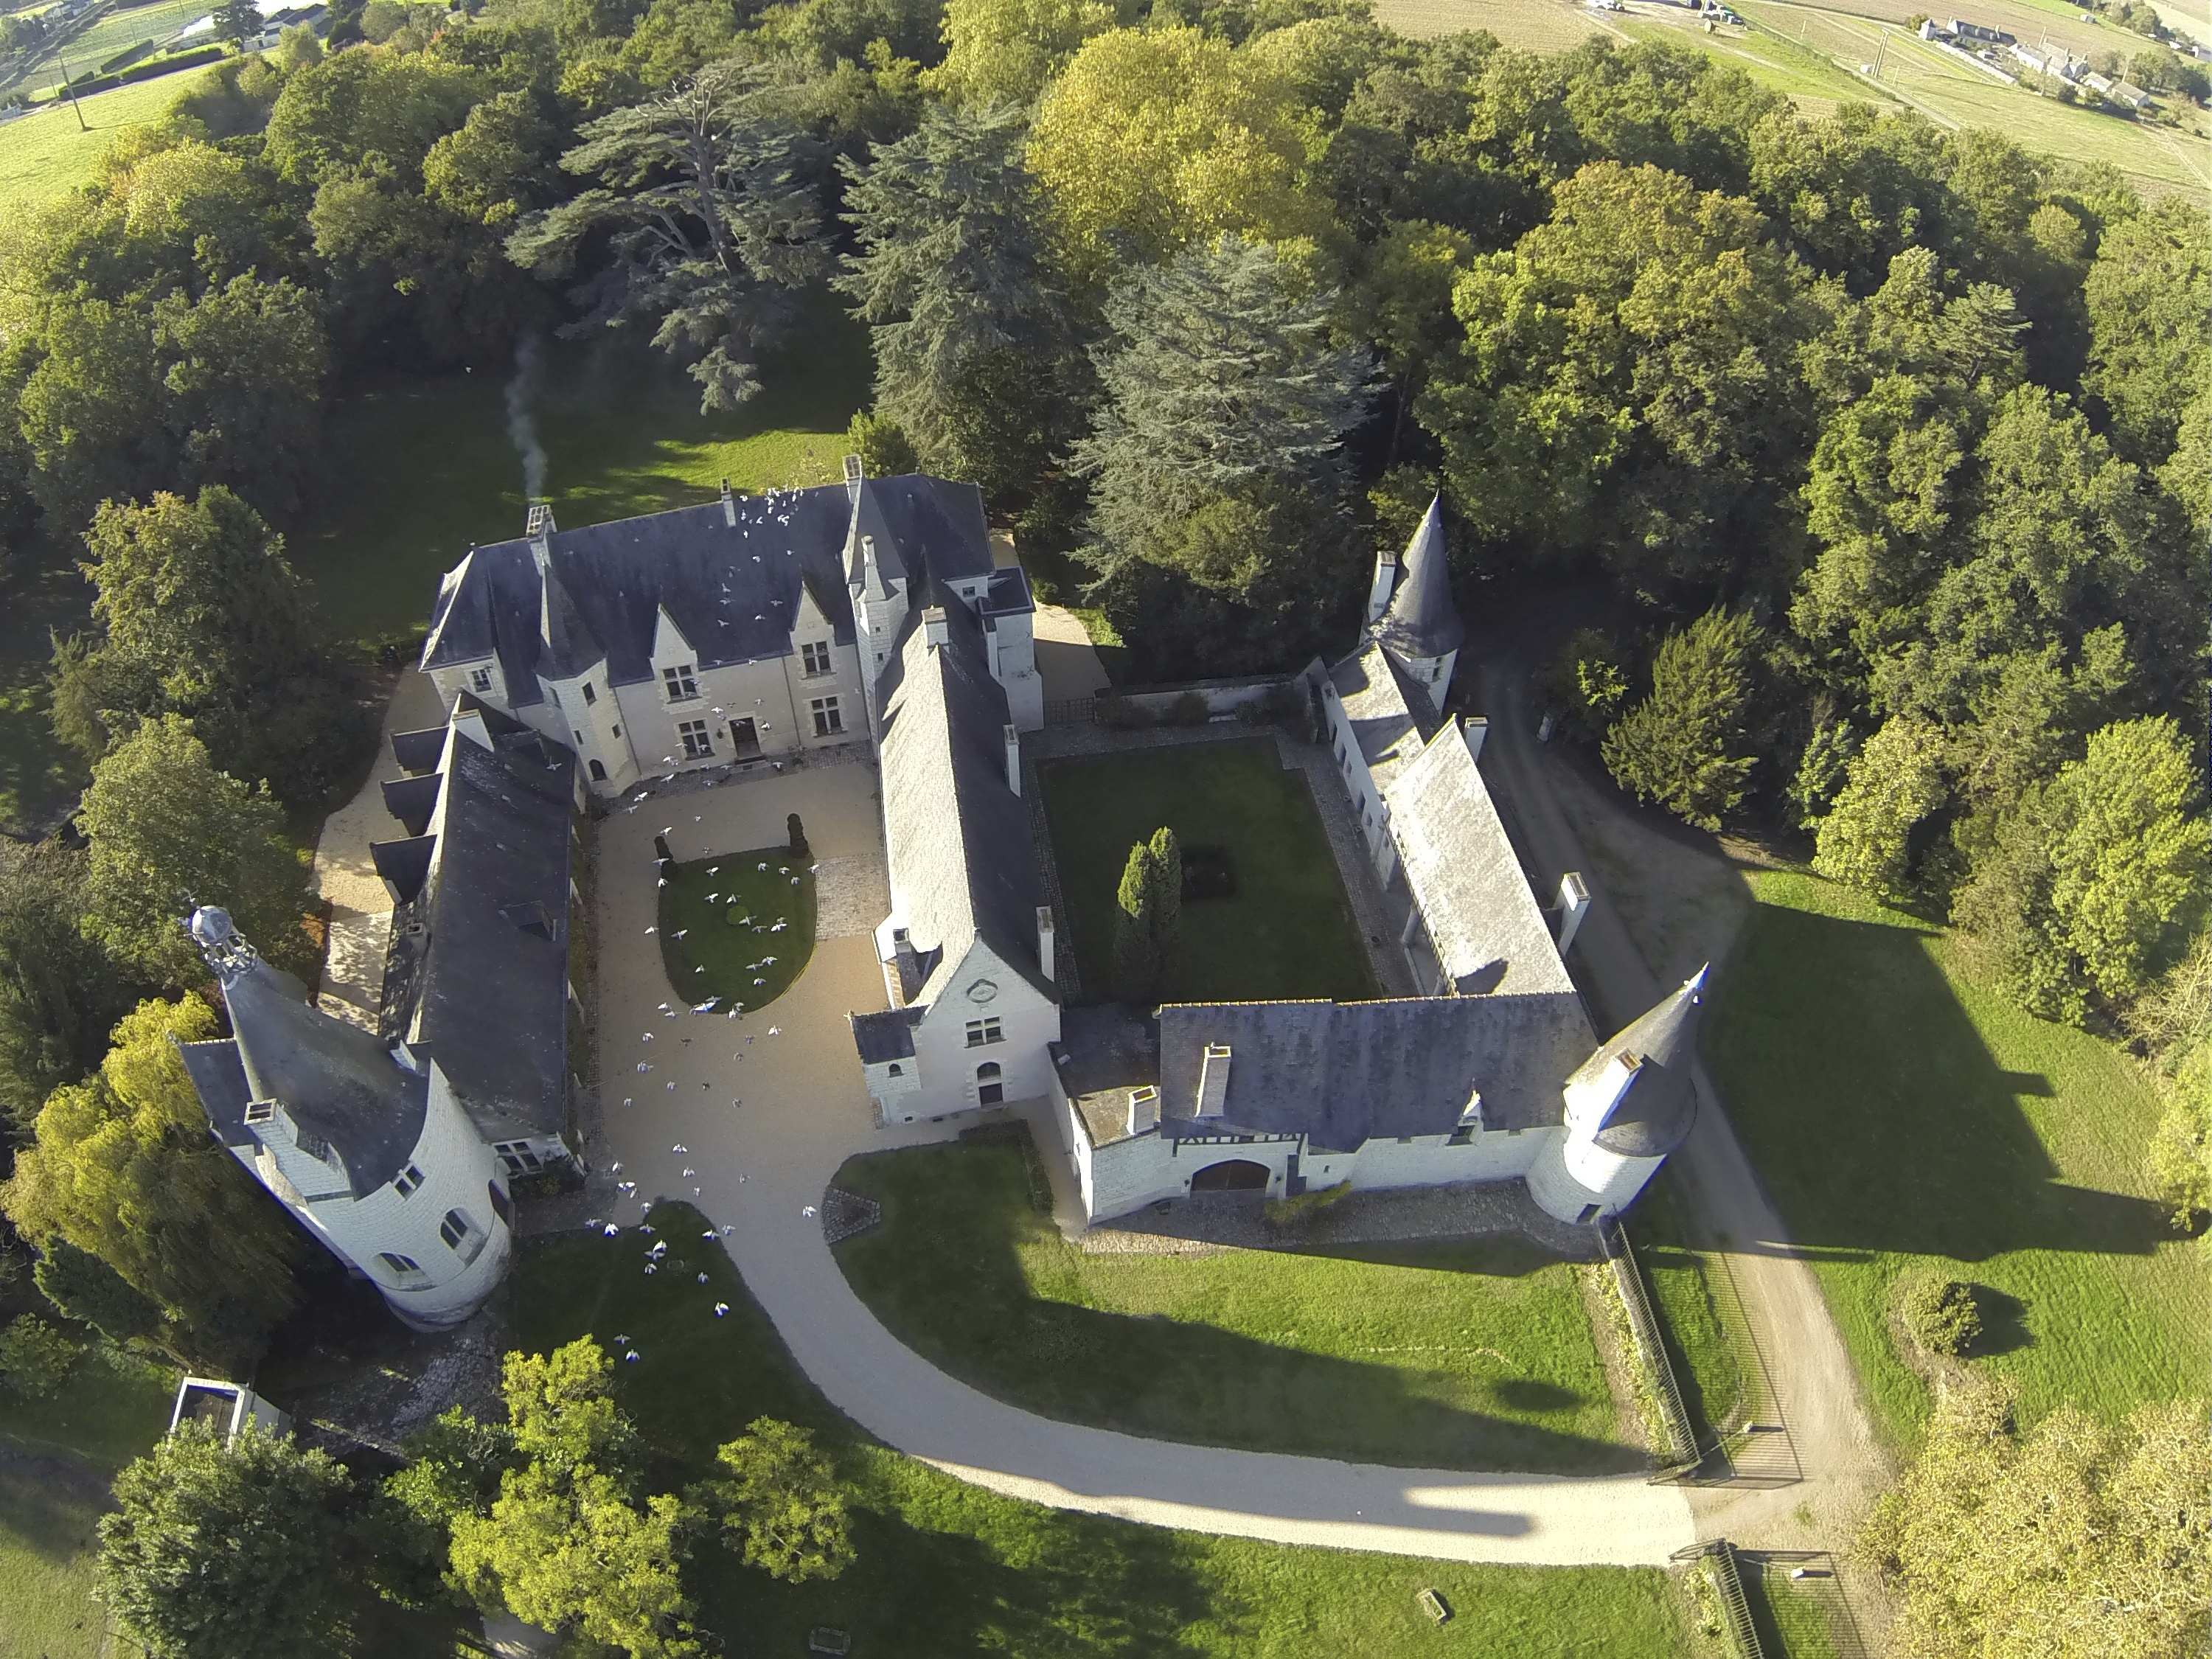 Video crits de roi ren le manoir de launay for Conception de plans de manoir